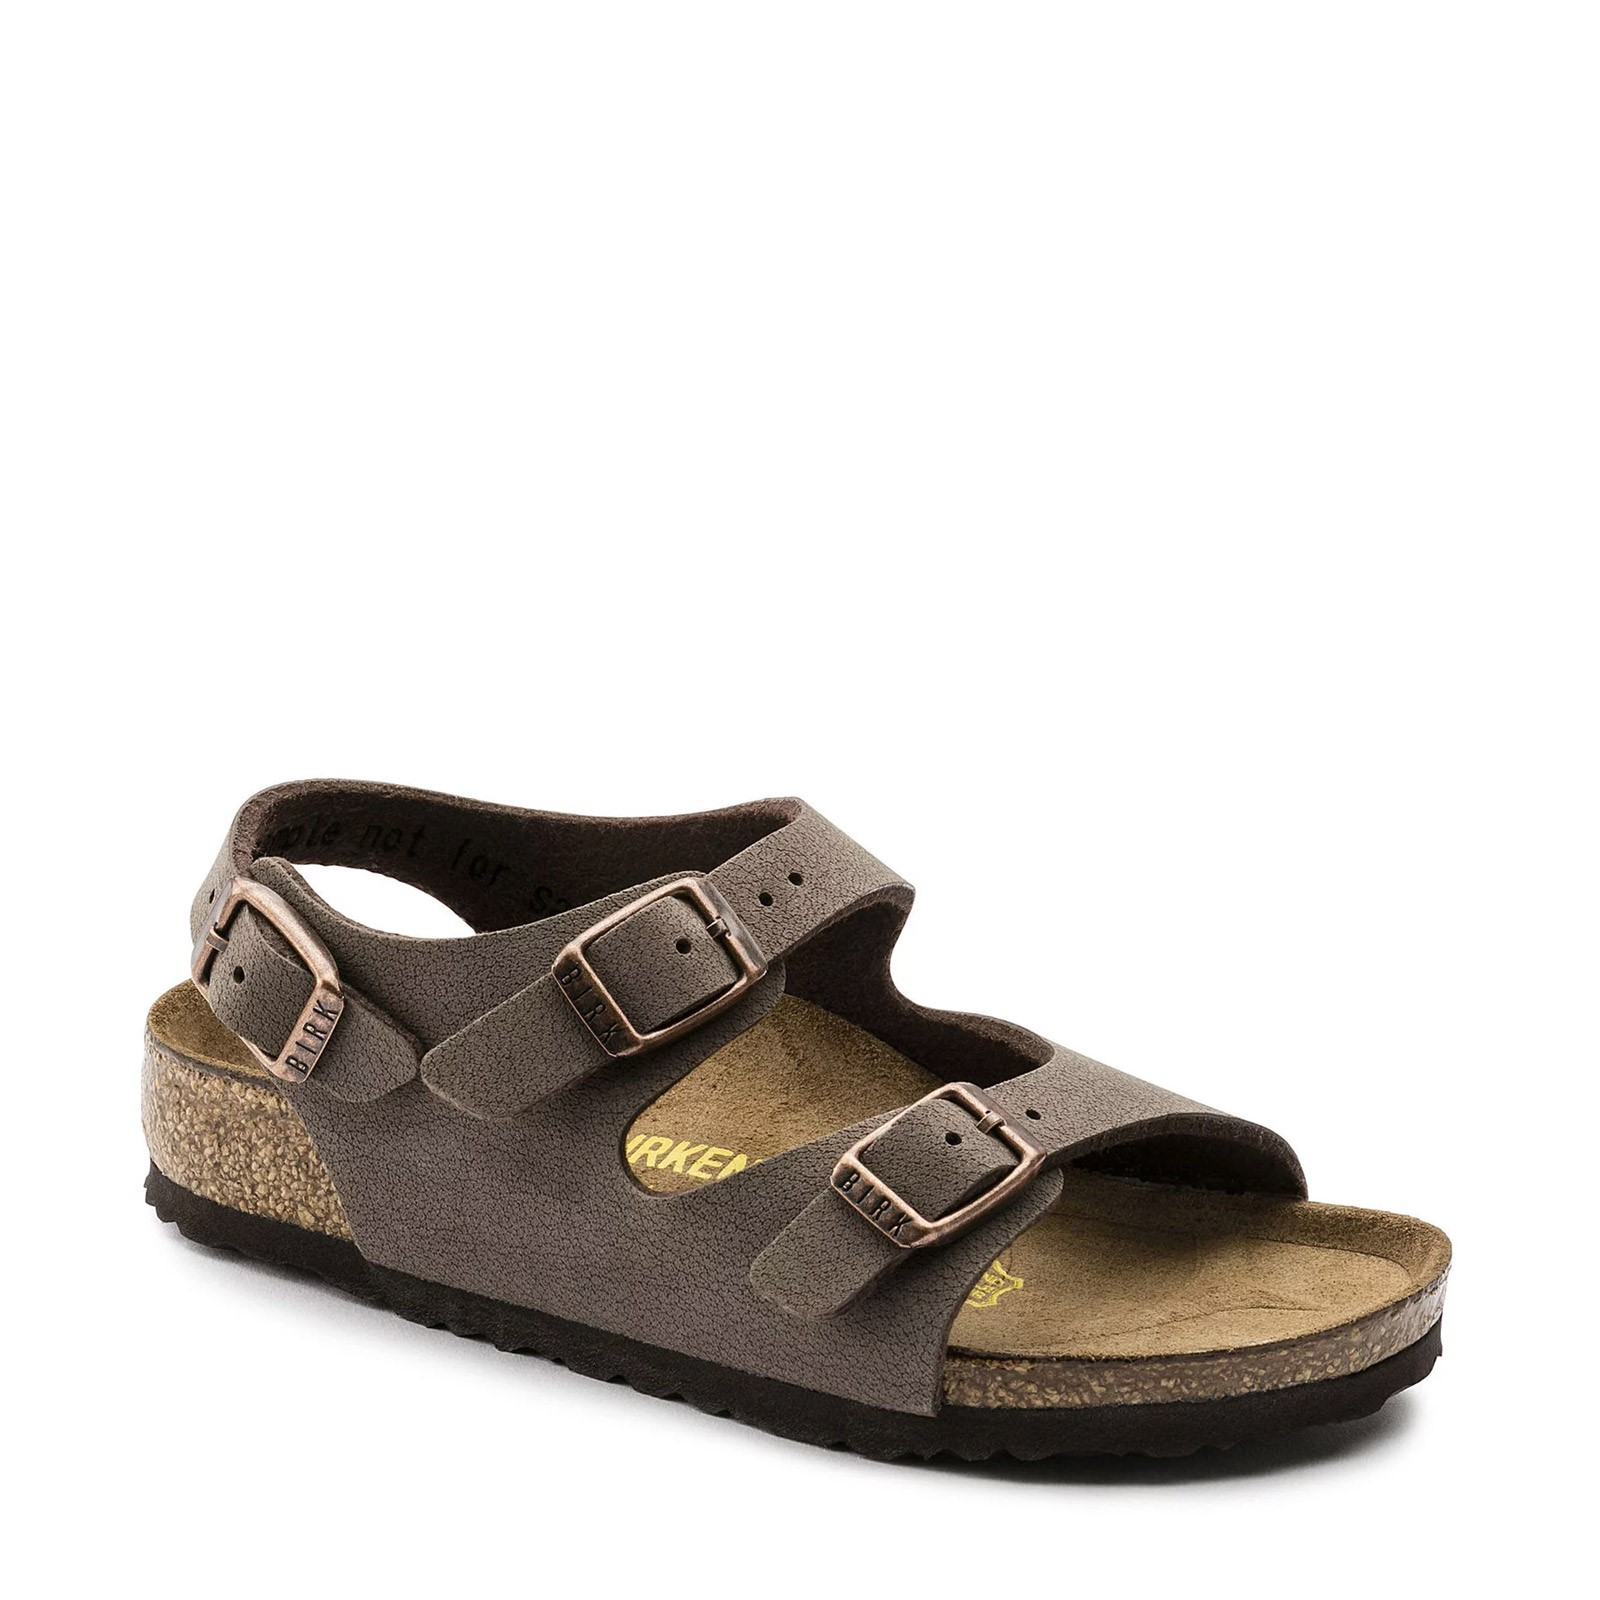 Boy's Birkenstock, Roma Sandal - Toddler & Little Kid